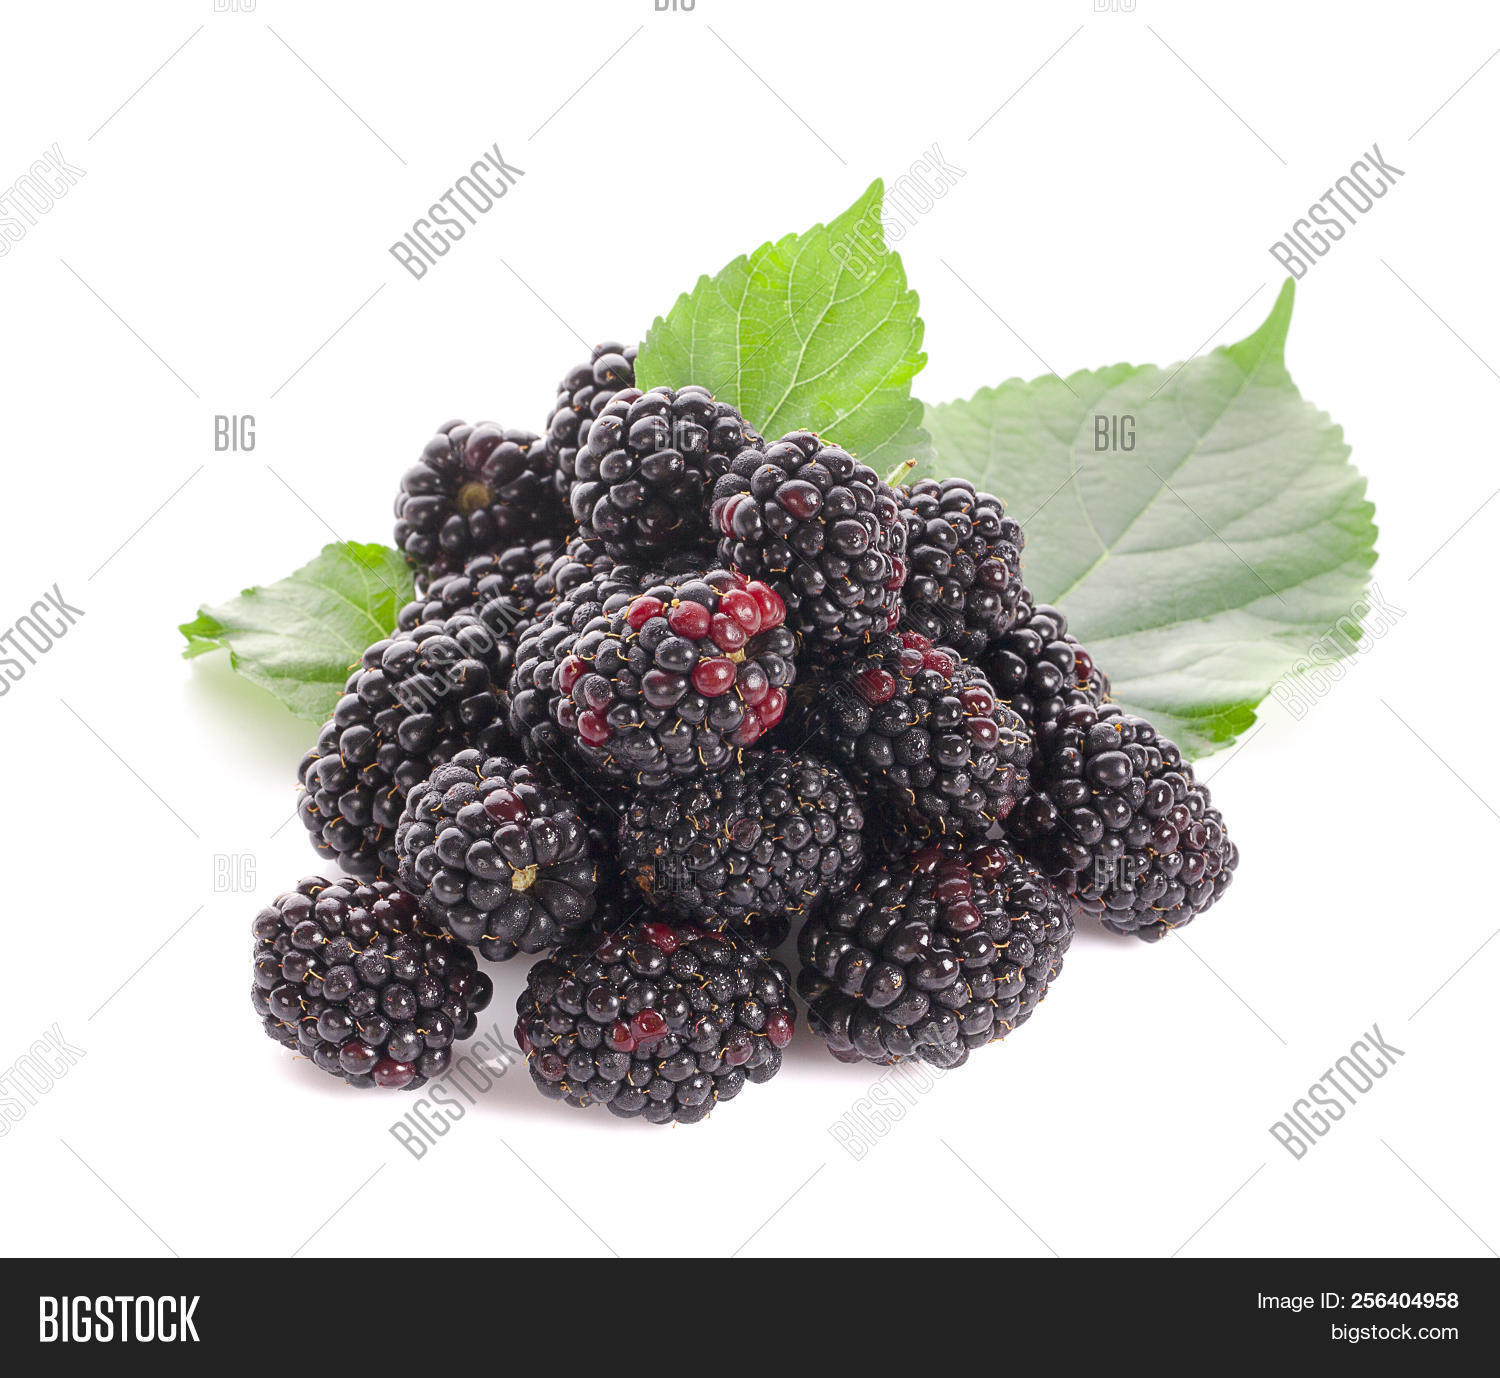 background,berry,best,black,blackberries,brambleberry,clipping,close-up,closeup,delicious,dessert,diet,eating,food,fresh,freshness,fruit,gourmet,group,healthy,horizontal,ingredient,isolated,juicy,leaf,macro,natural,nature,nobody,one,organic,path,raspberry,raw,red,retouched,ripe,seen,single,standing,studio,summer,sweet,three,two,white,whole,you